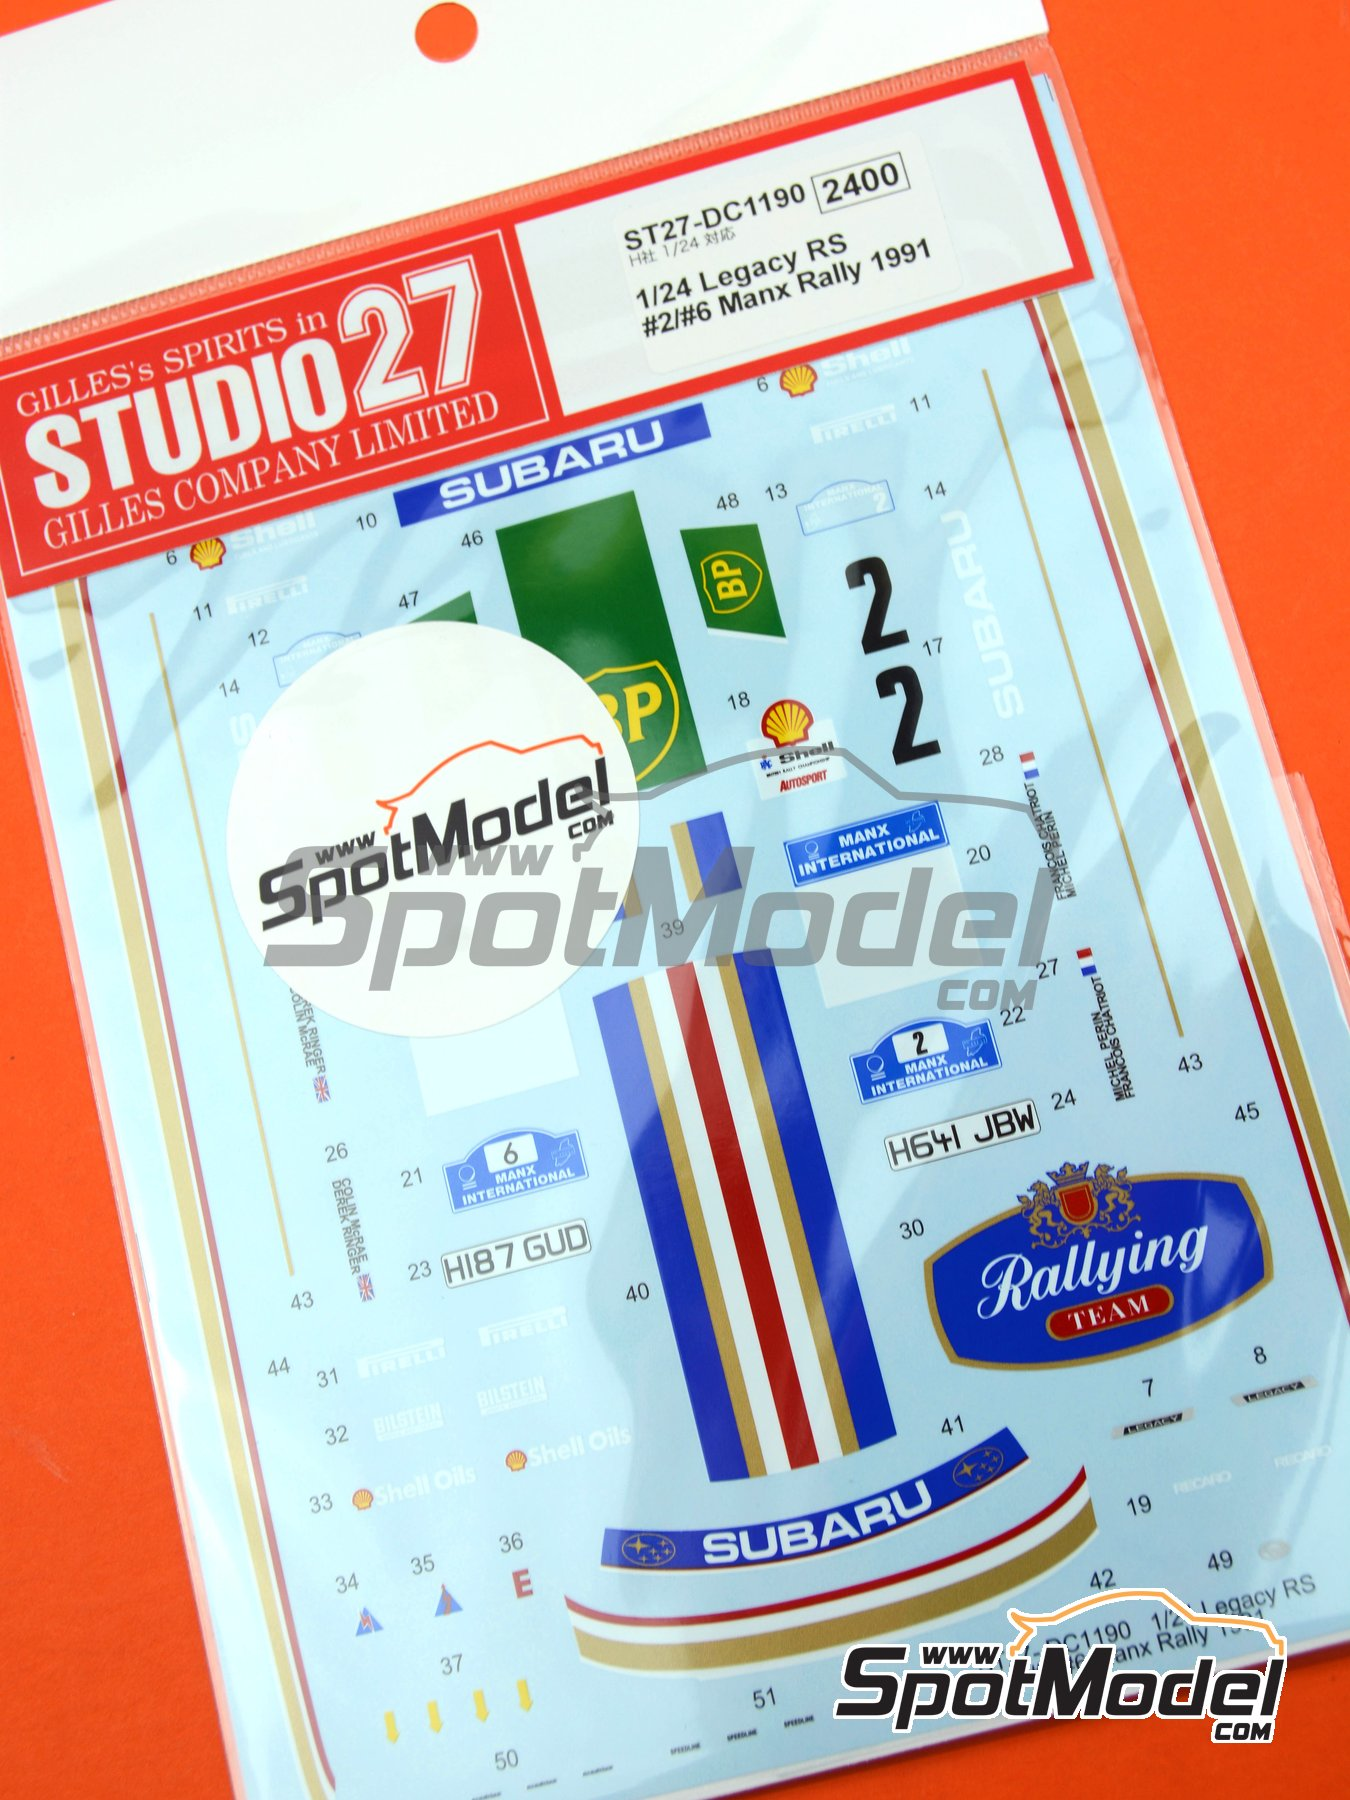 Subaru Legacy RS Rothmans Subaru UK Rally Team - Manx International Rally 1991 | Marking / livery in 1/24 scale manufactured by Studio27 (ref. ST27-DC1190) image